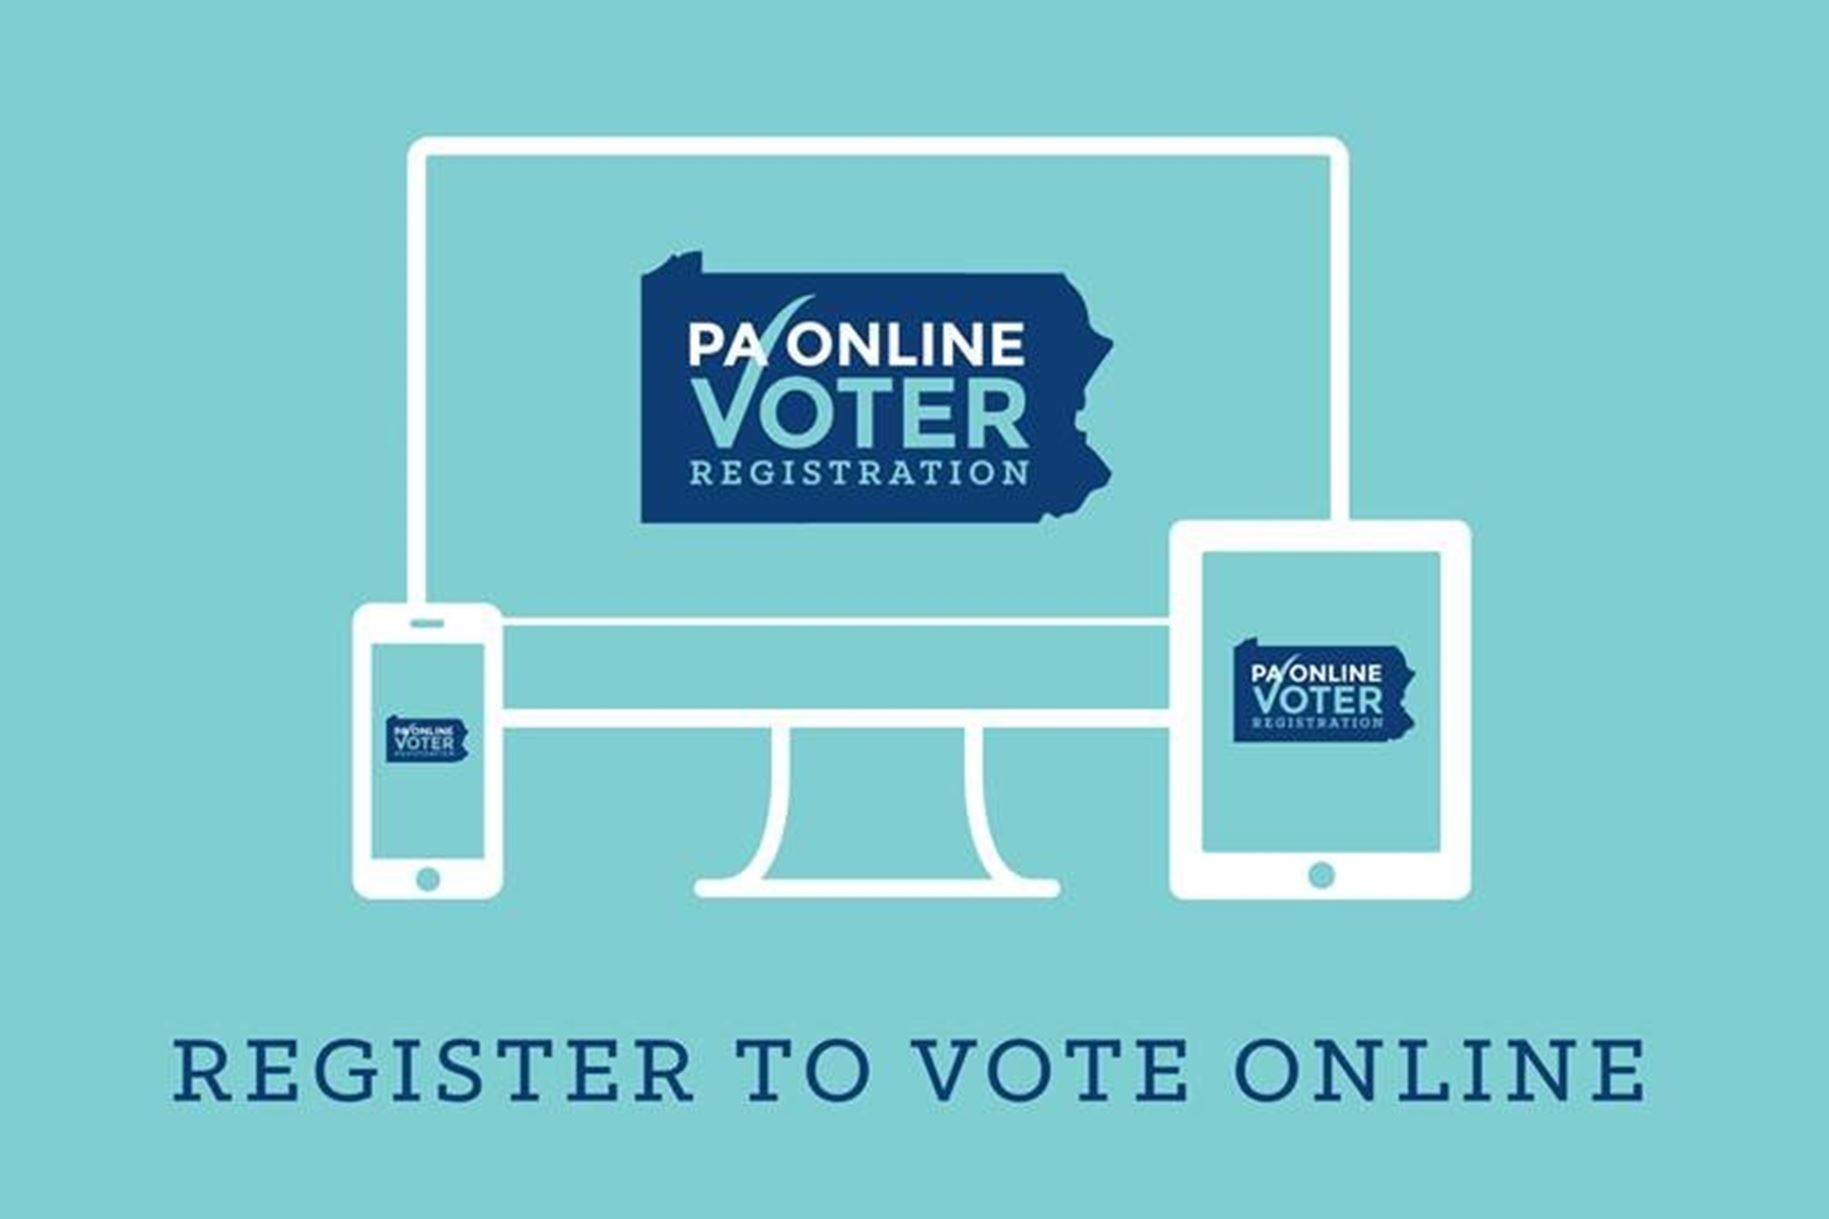 An stylized image of a computer, a smartphone and tablet encourage Pennsylvanians to register to vot